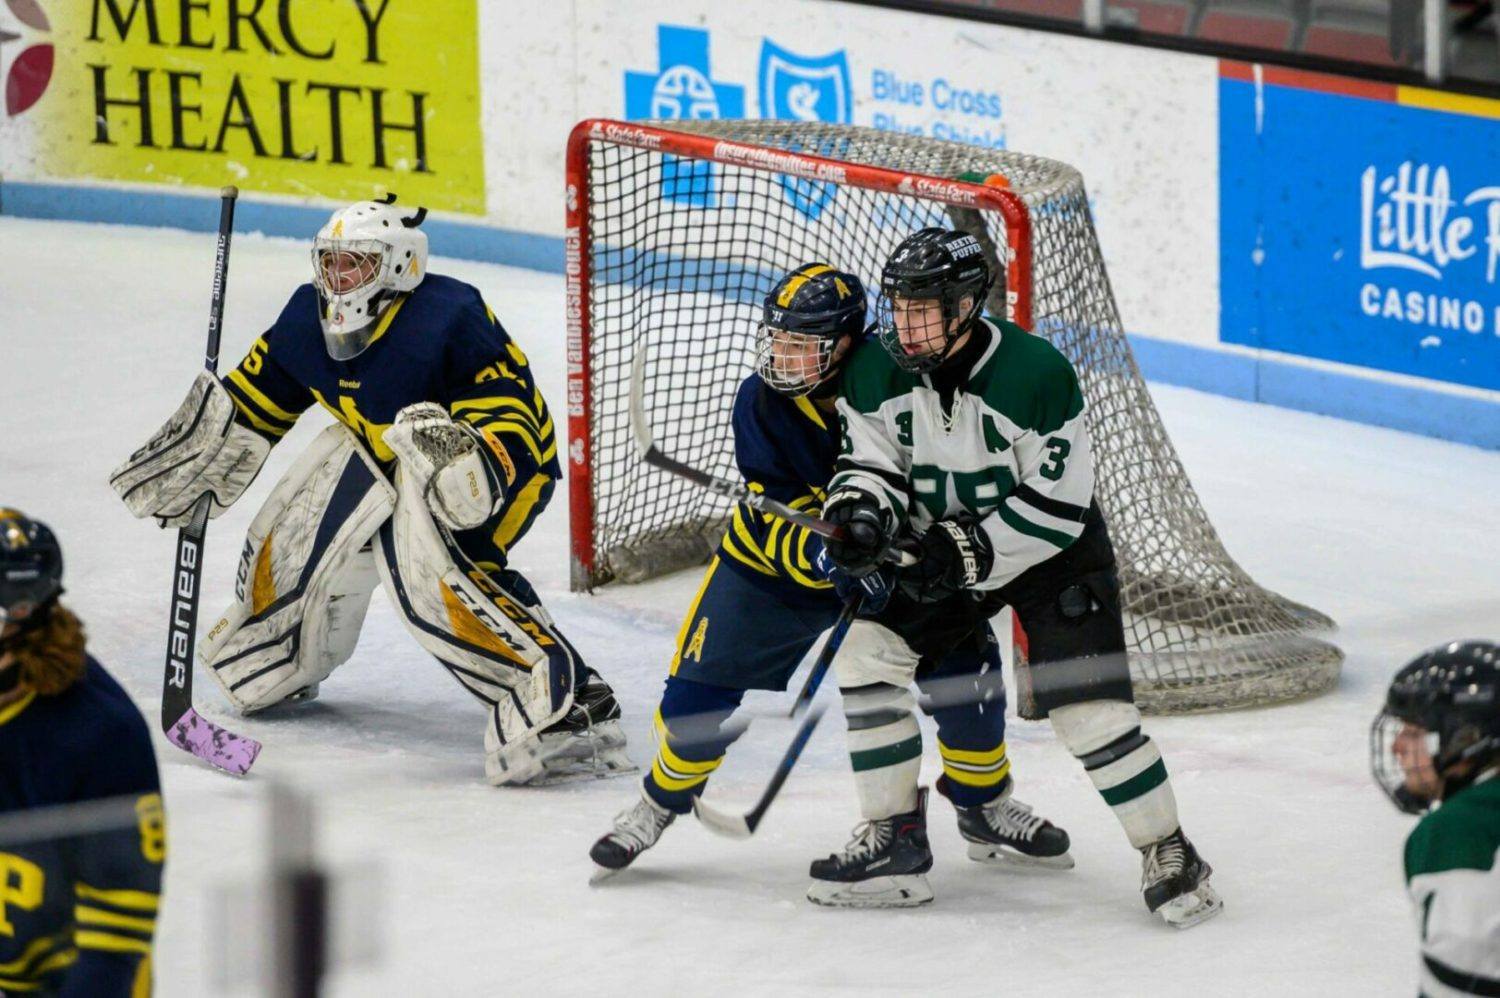 Reeths-Puffer hockey team pulls together a 6-2 win, increases season victory total to 13